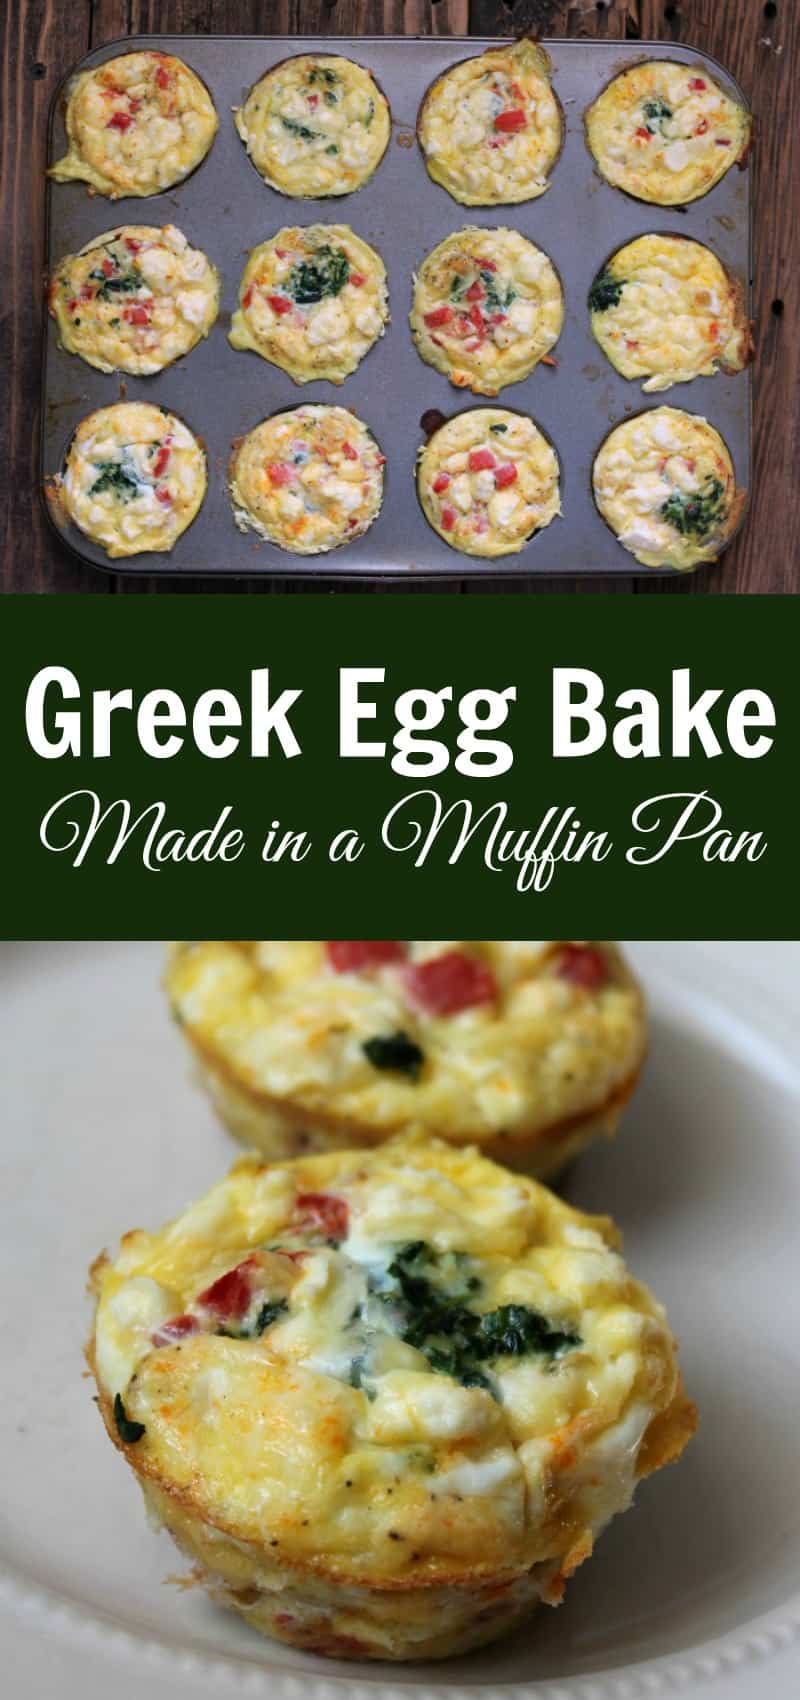 Make-ahead greek egg bake made in a muffin pan